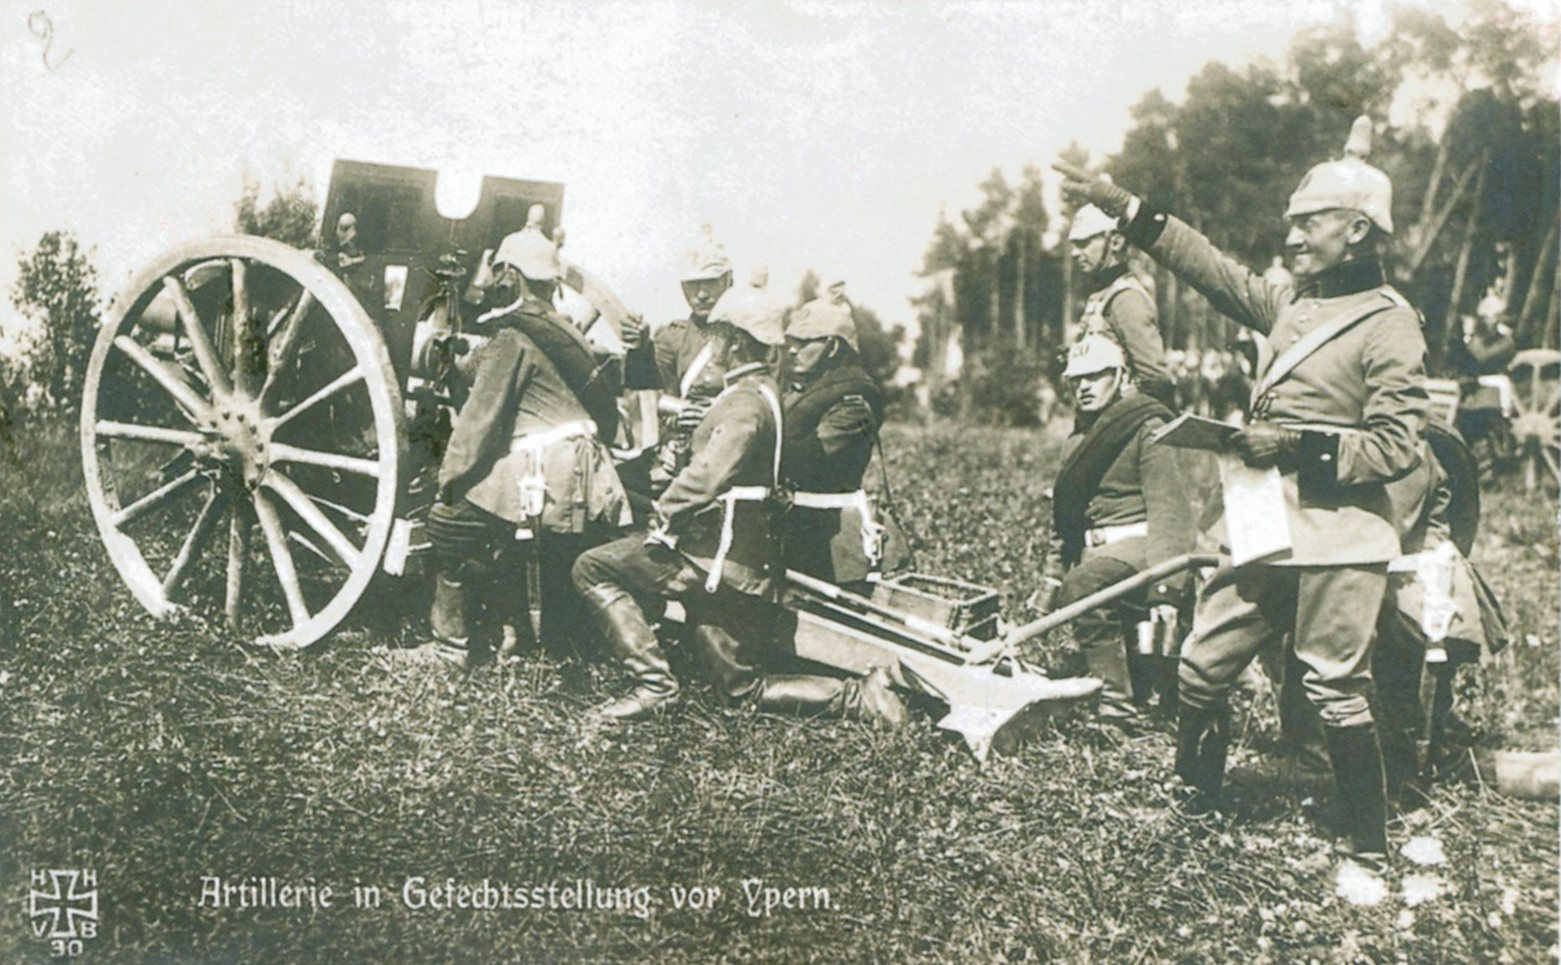 German  artillery bombardment on Eastern Front, August 1915.